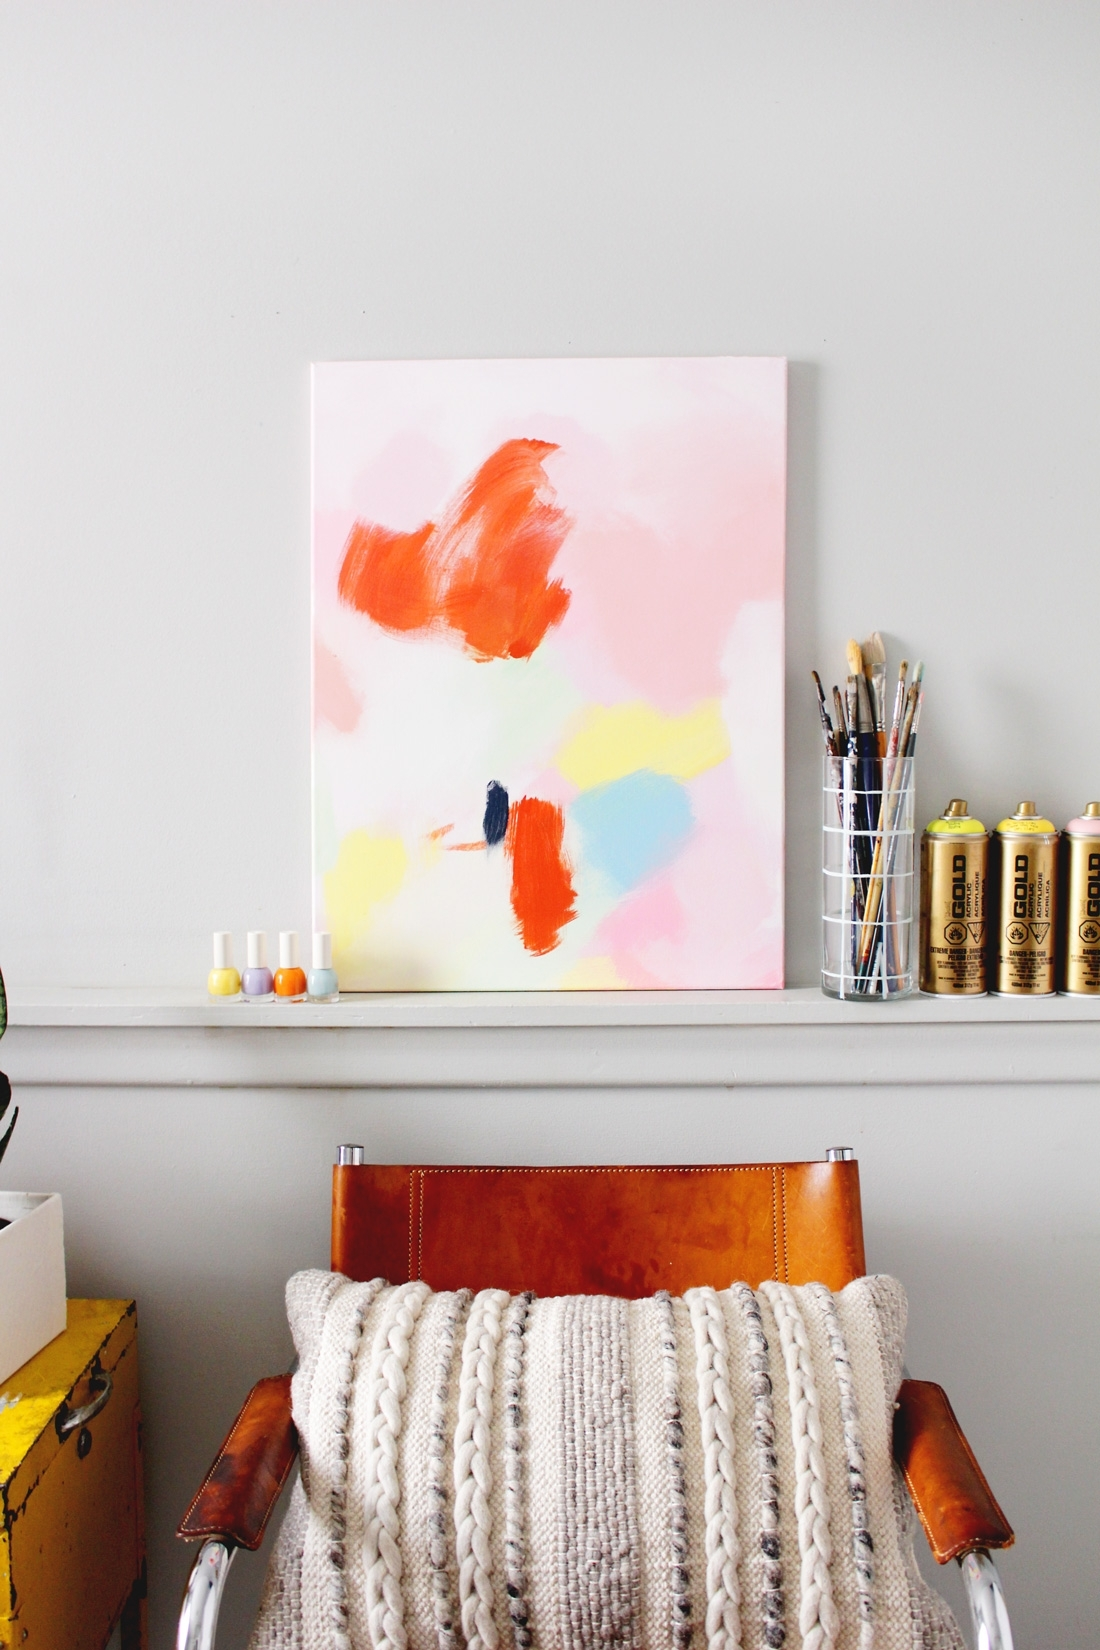 Diy Anthropologie Acrylic Wall Art On Brit + Co | Fish & Bull For Most Recent Anthropologie Wall Art (View 18 of 20)